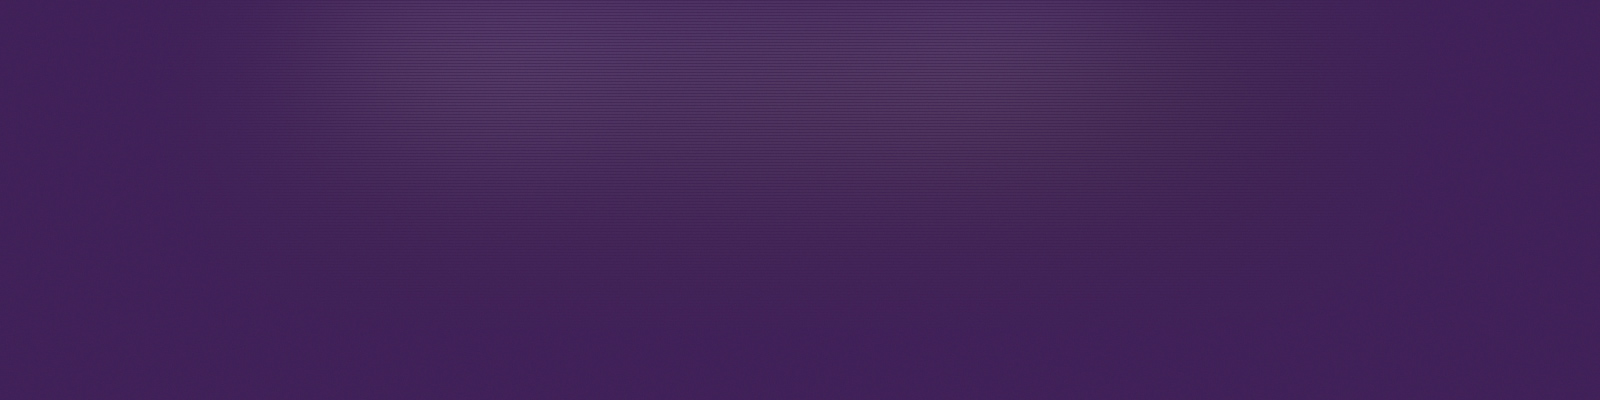 Index of /wp-content/themes/enticing/css/skins/purple